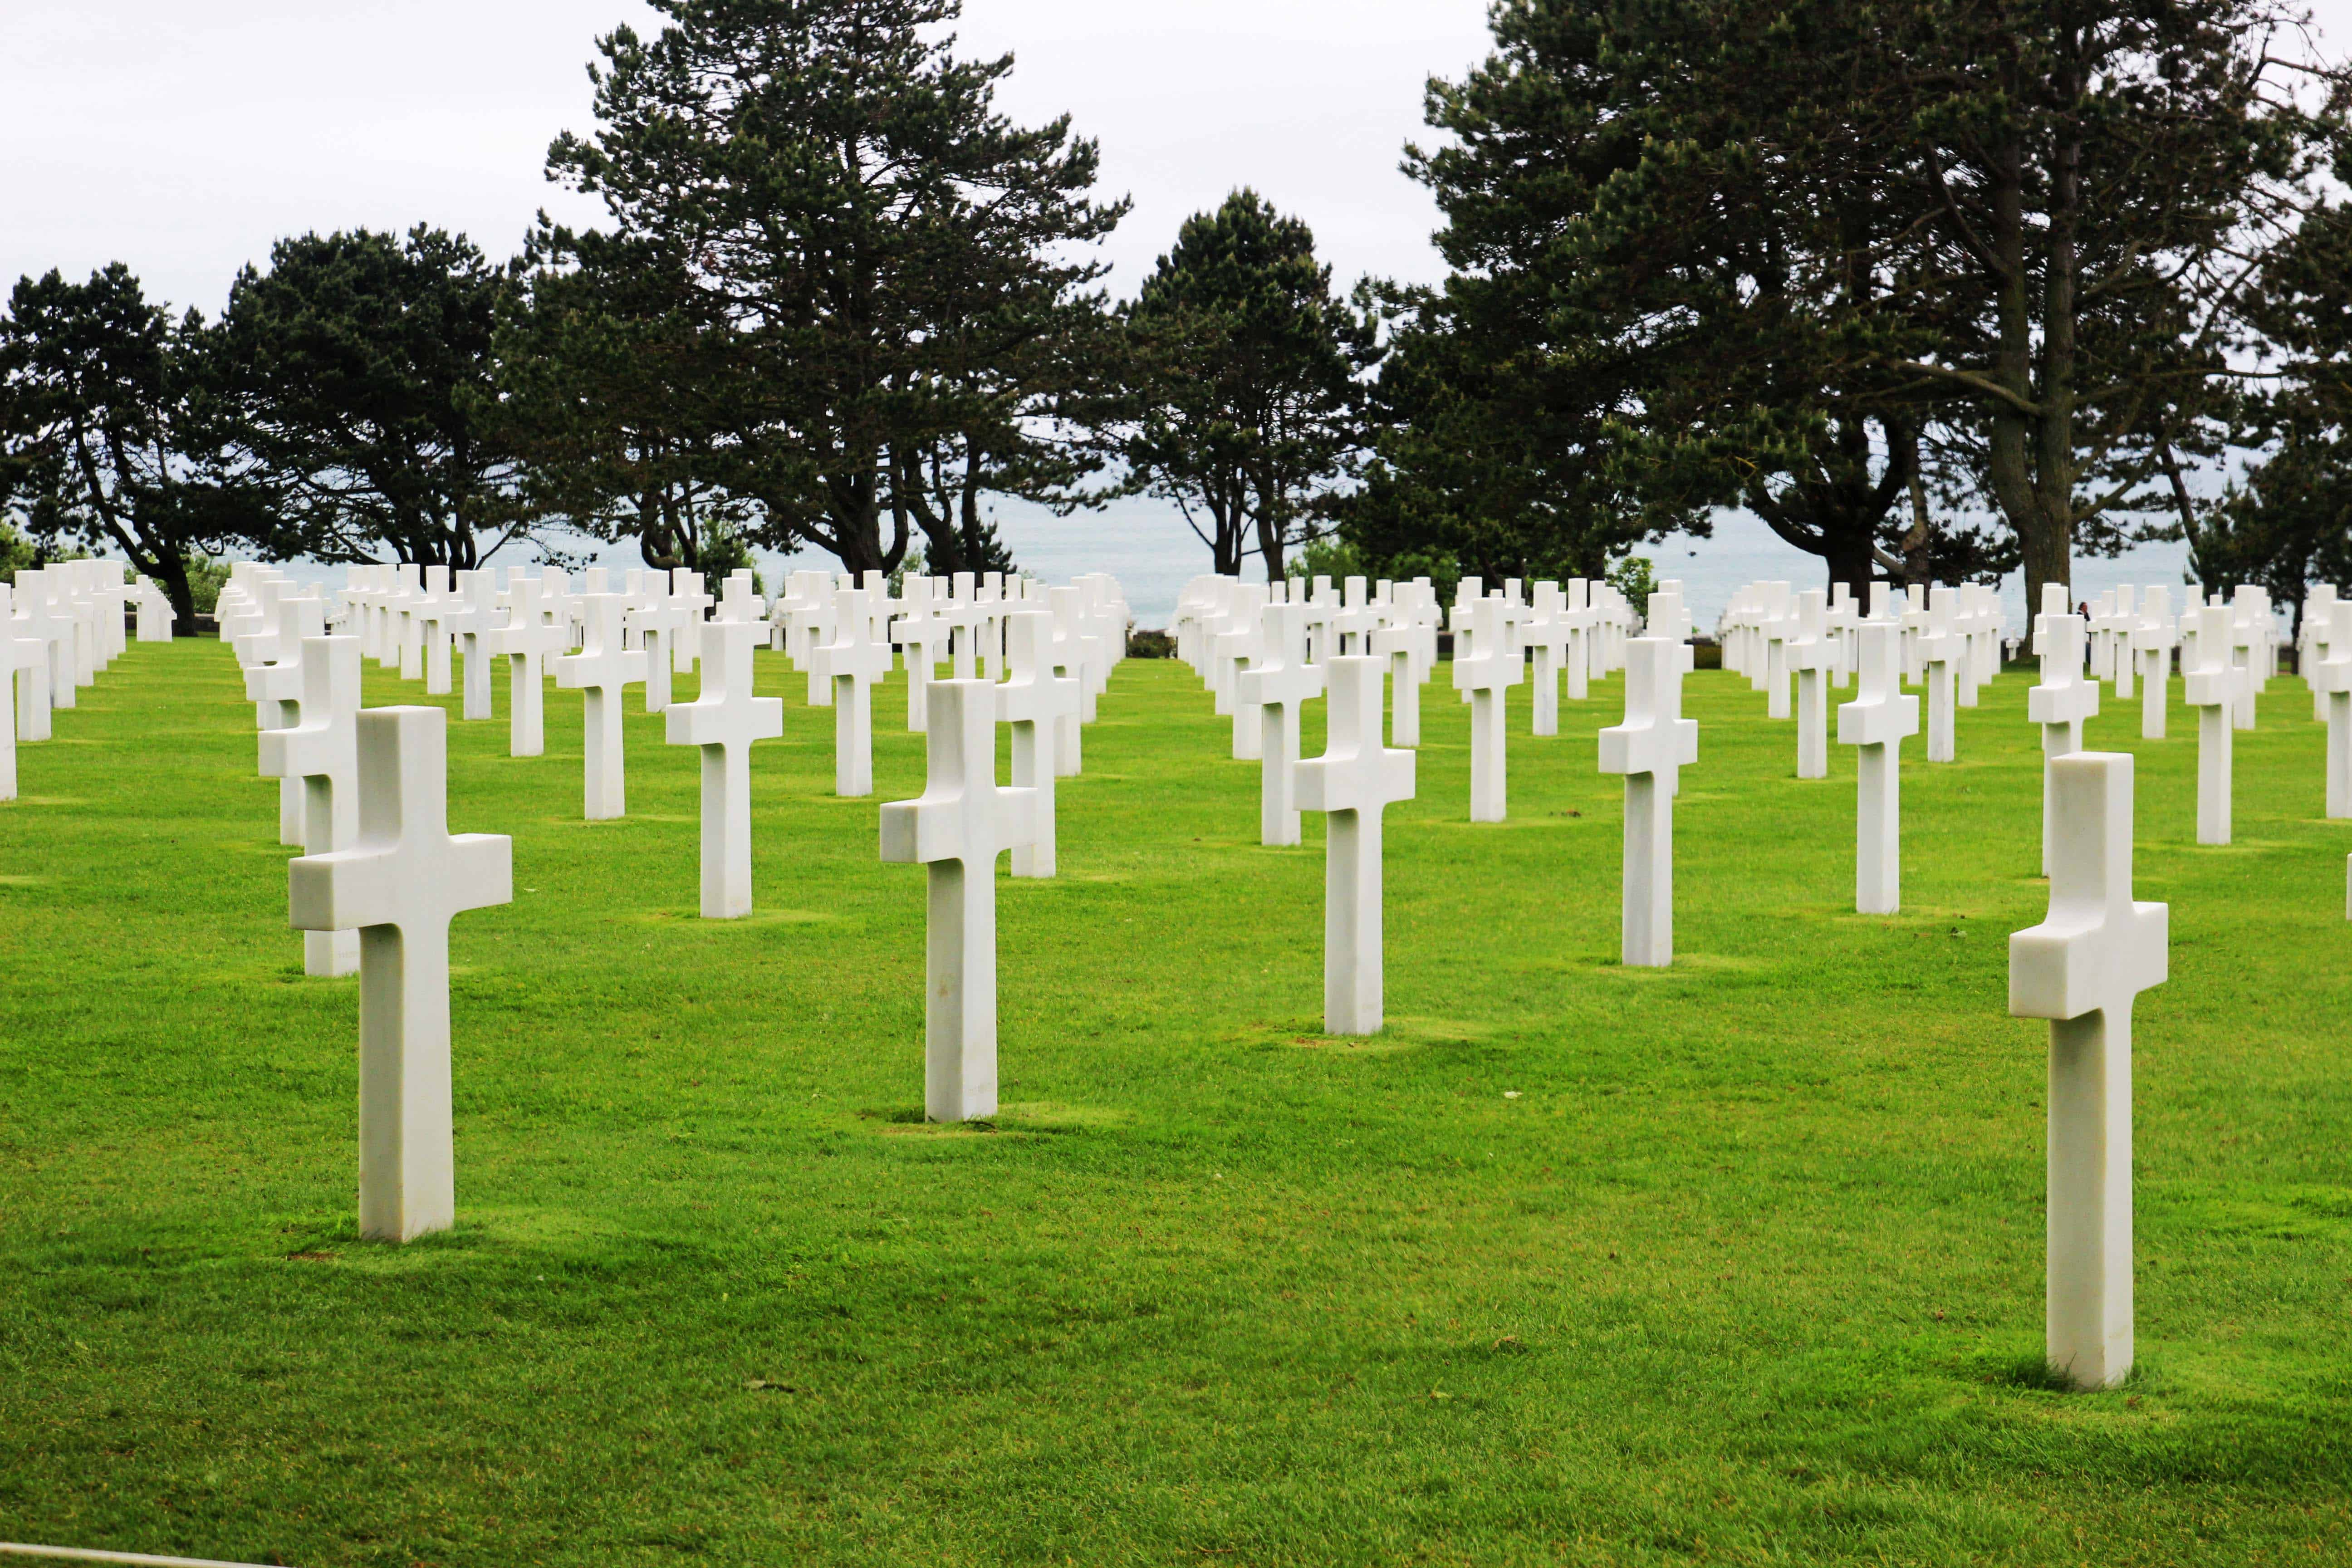 d day tour from Paris - see the landing beaches - Juno beach, Omaha beach - take a private normandy tours from Paris